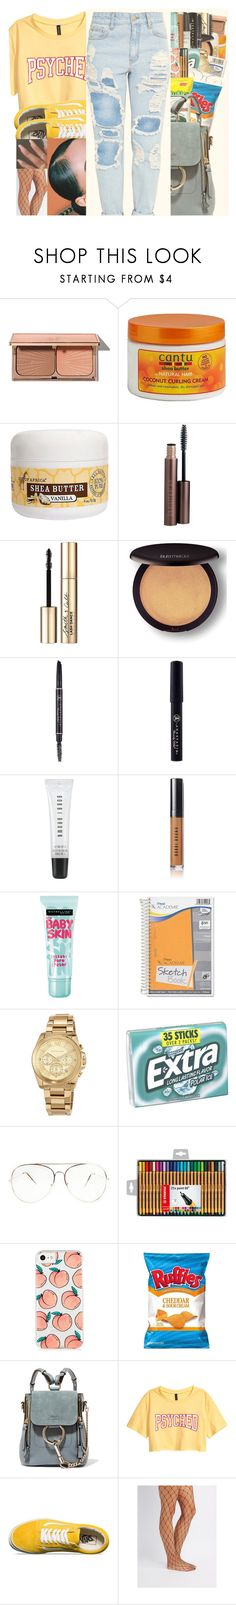 """""""COLOR : YELLOW"""" by w-on-der-lan-d ❤ liked on Polyvore featuring Charlotte Tilbury, Cantu, Out of Africa, Laura Mercier, Smith & Cult, Anastasia Beverly Hills, Bobbi Brown Cosmetics, Maybelline, Mead and MICHAEL Michael Kors"""